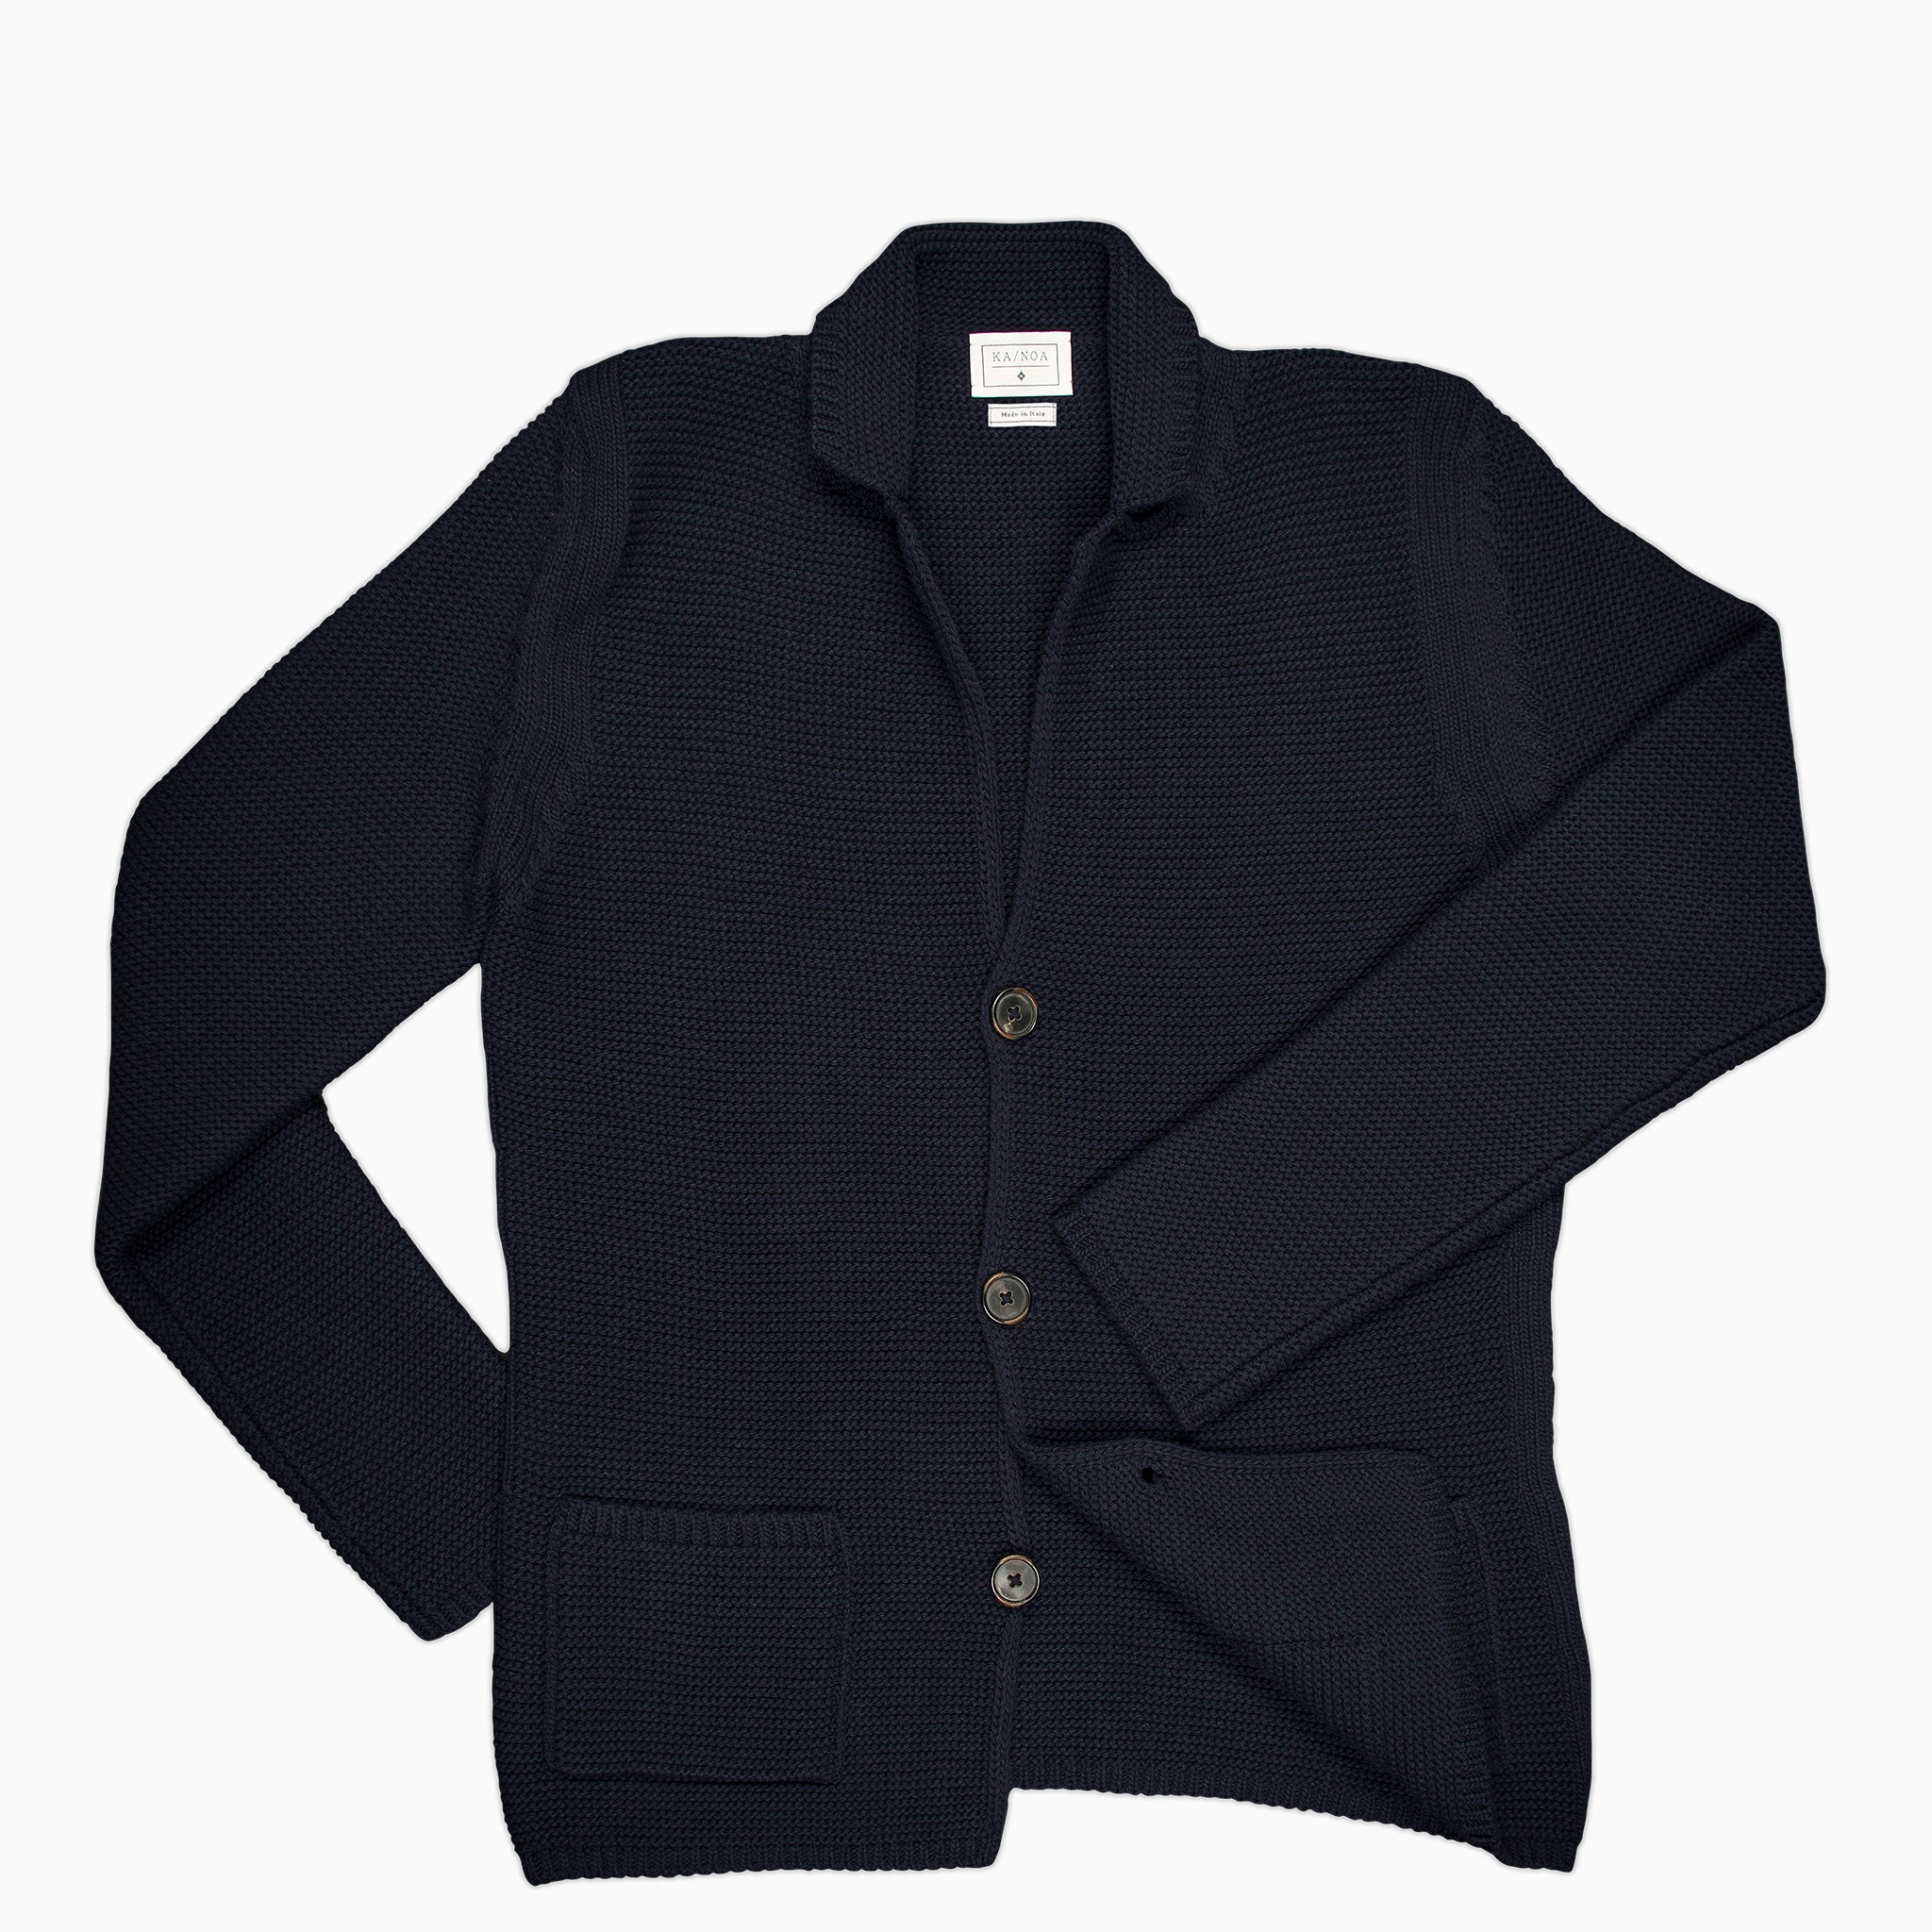 Augustin knitted blazer (dark blue)